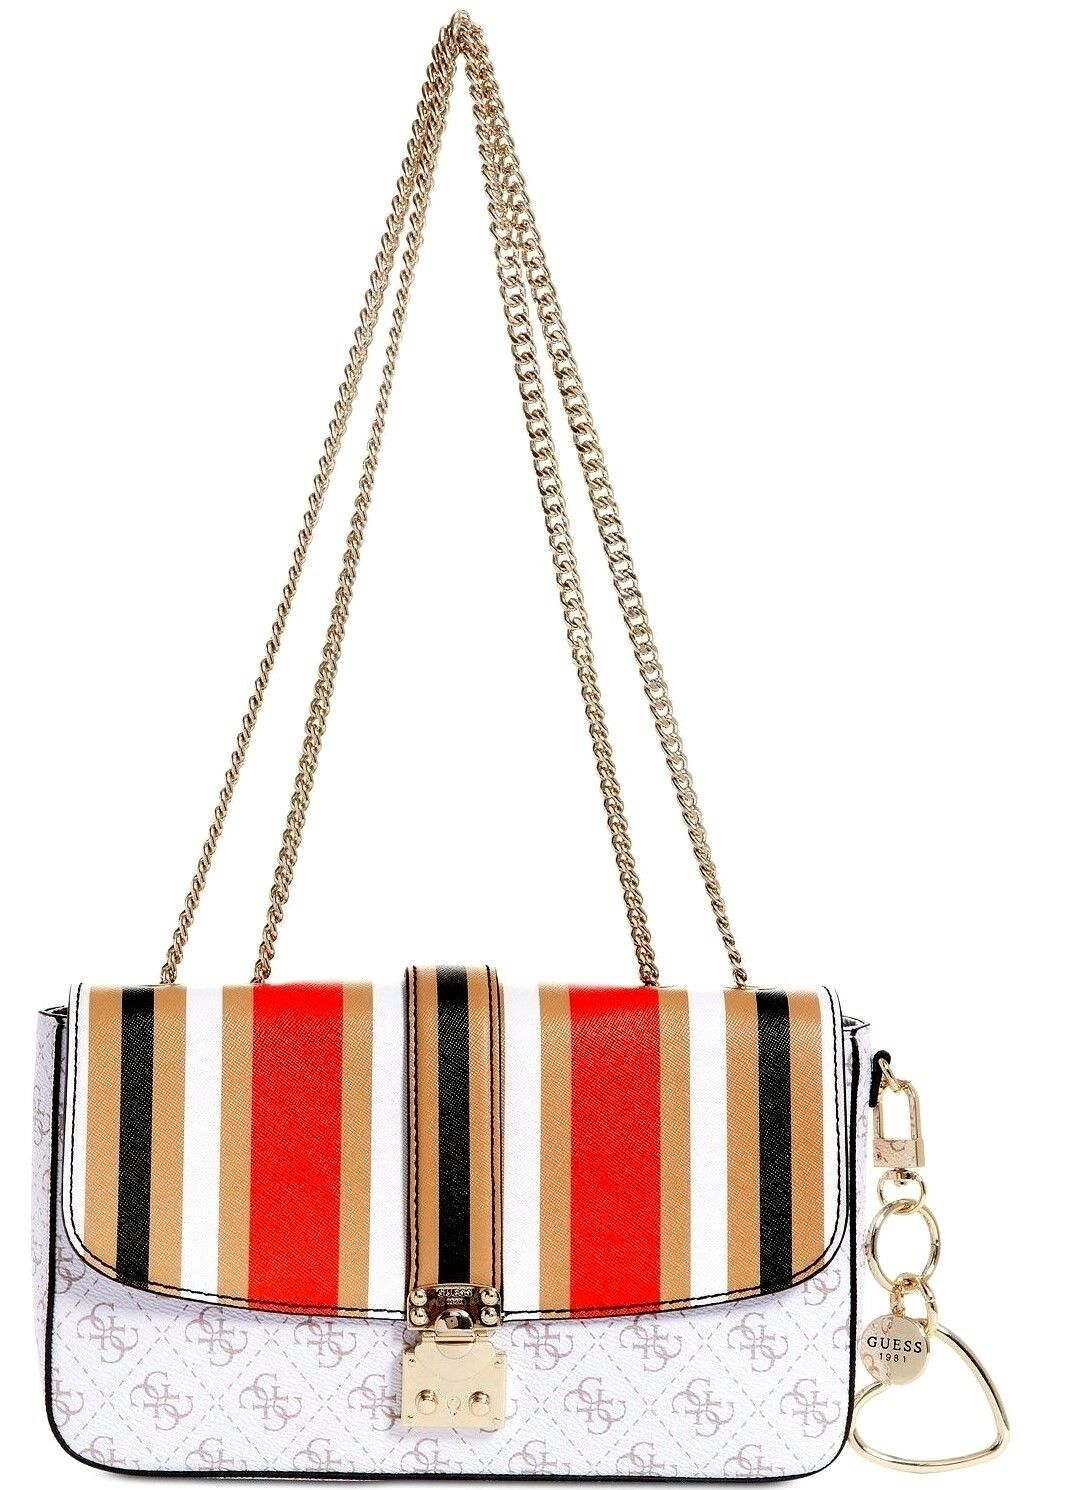 85a0ee3932b0 GUESS Joslyn Signature Shoulder Bag Small Multi Color for sale ...